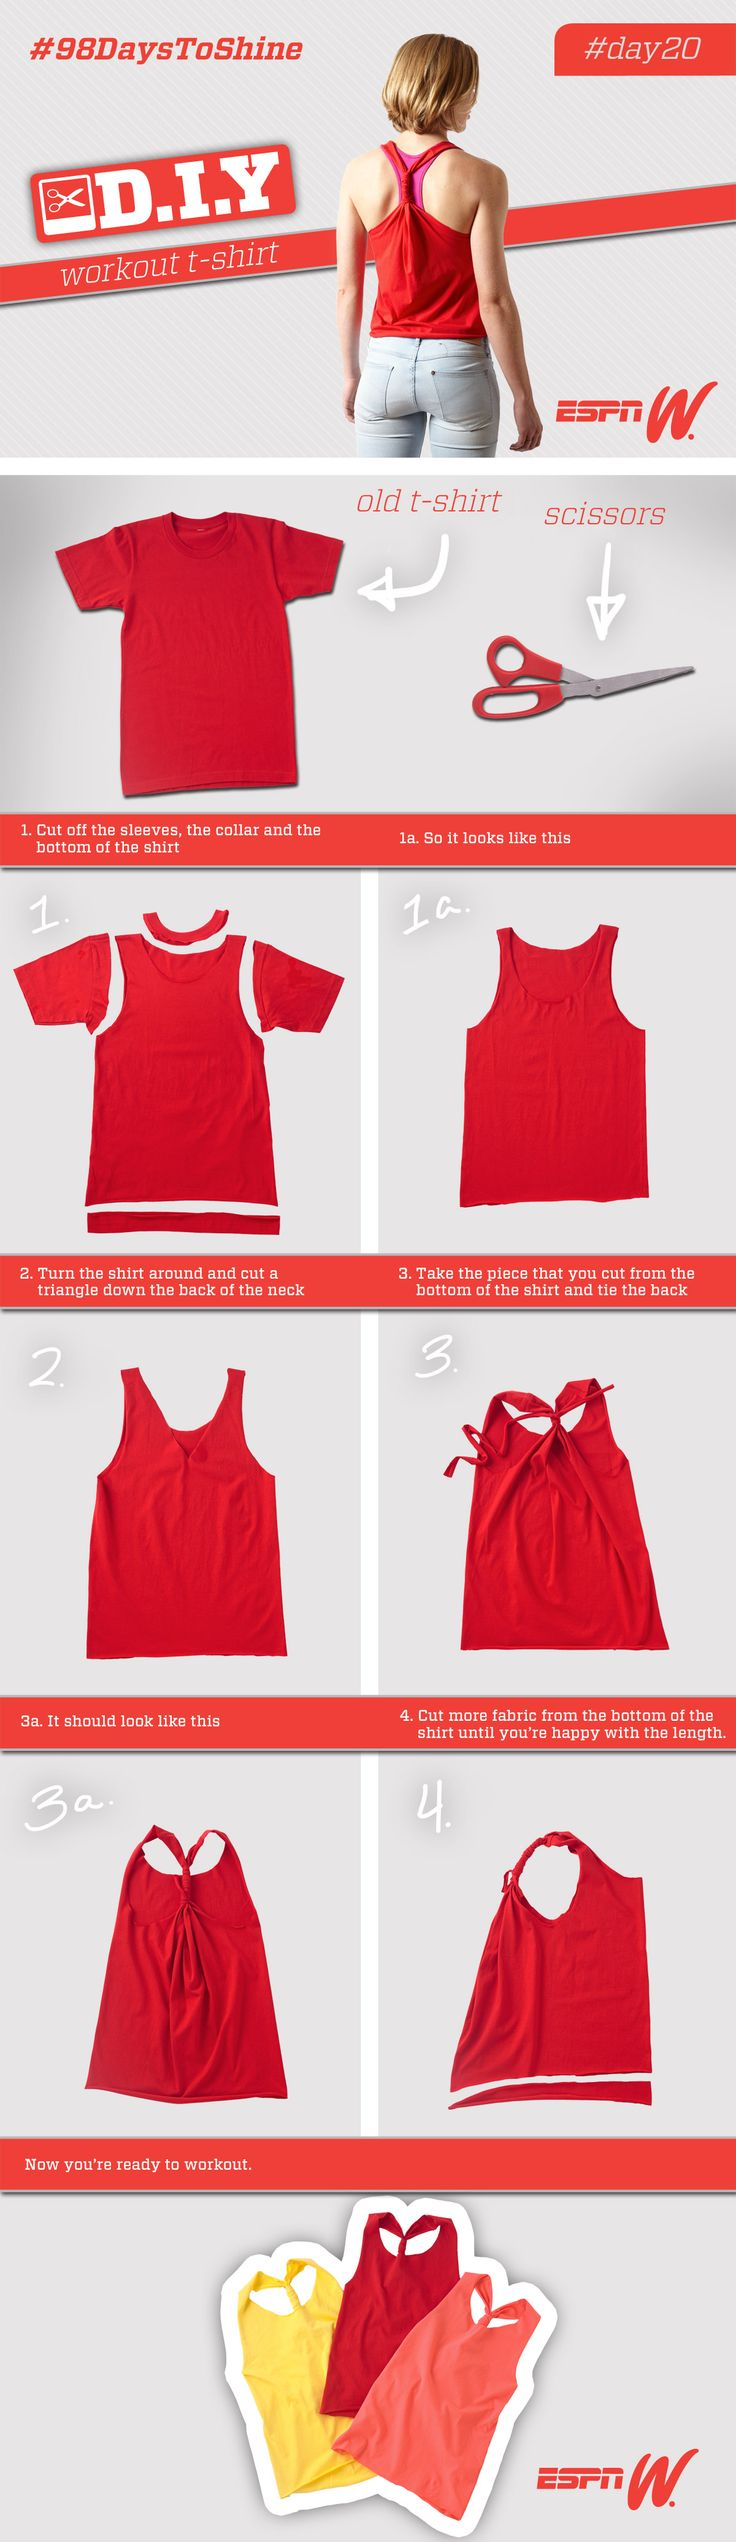 Design t shirt easy - Learn How To Turn An Old T Shirt Into The Perfect Workout Top Visit